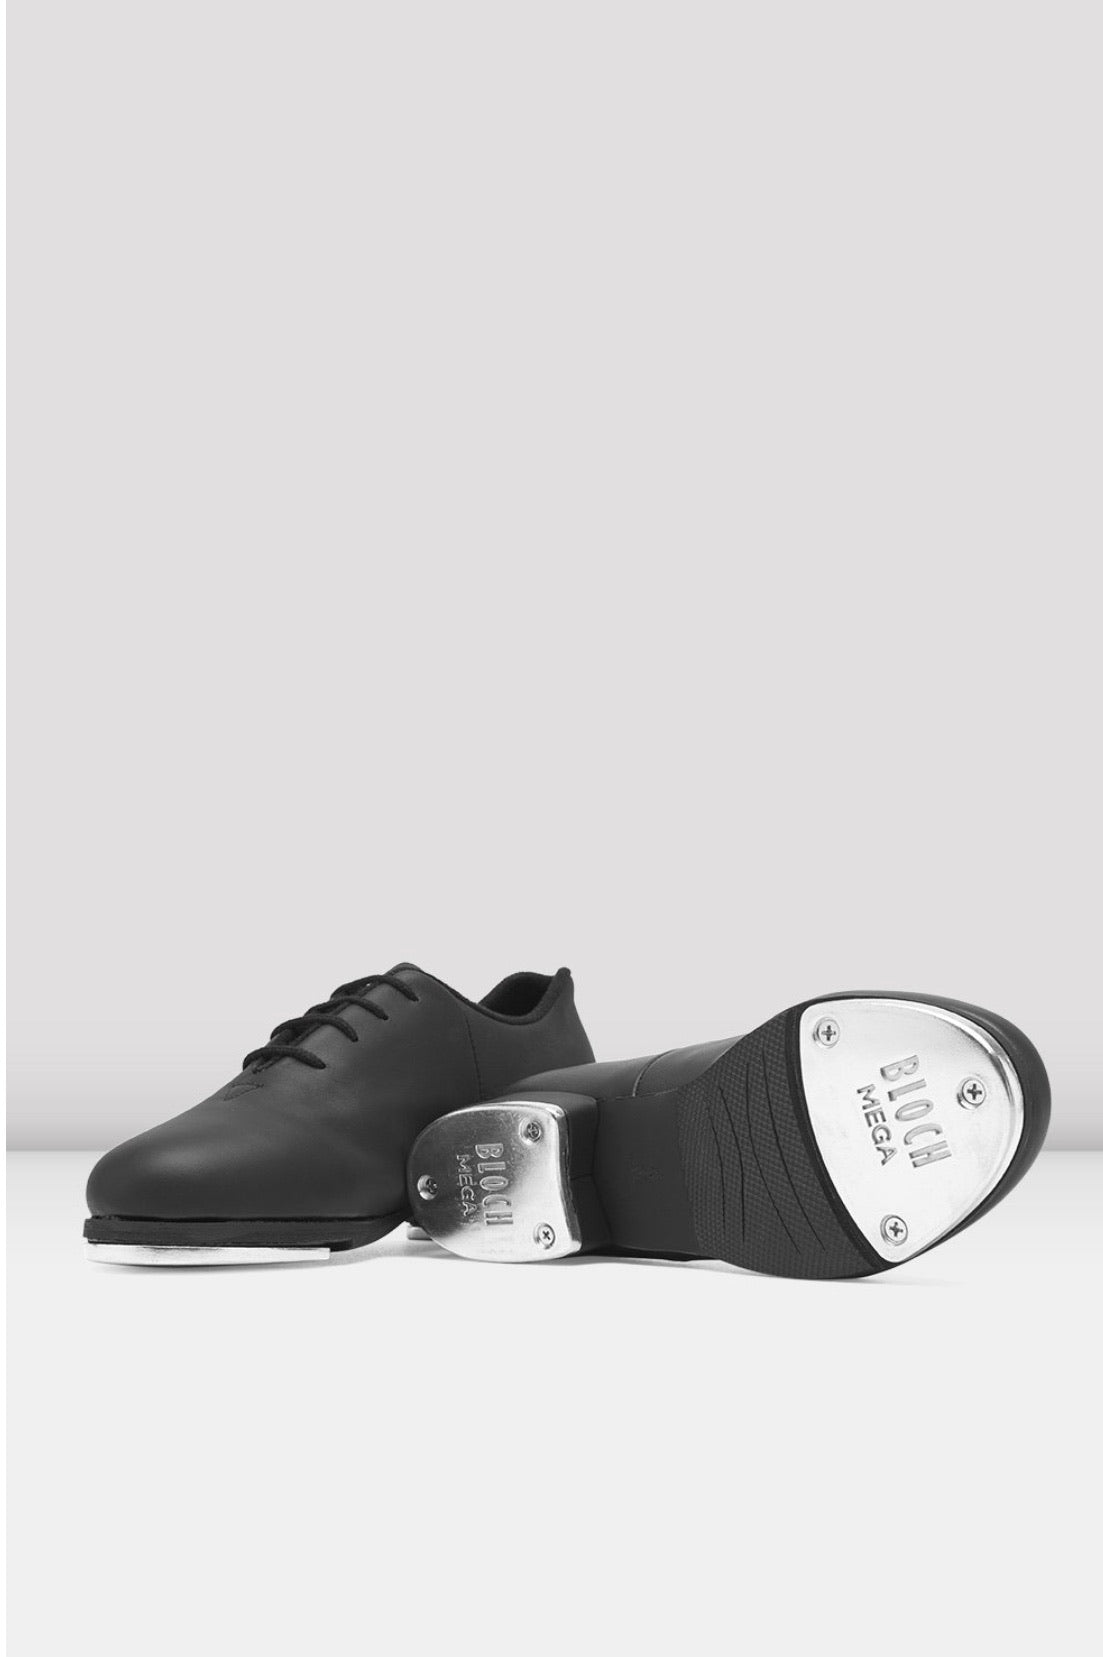 Bloch Sync Tap Leather Tap Shoes - Adult